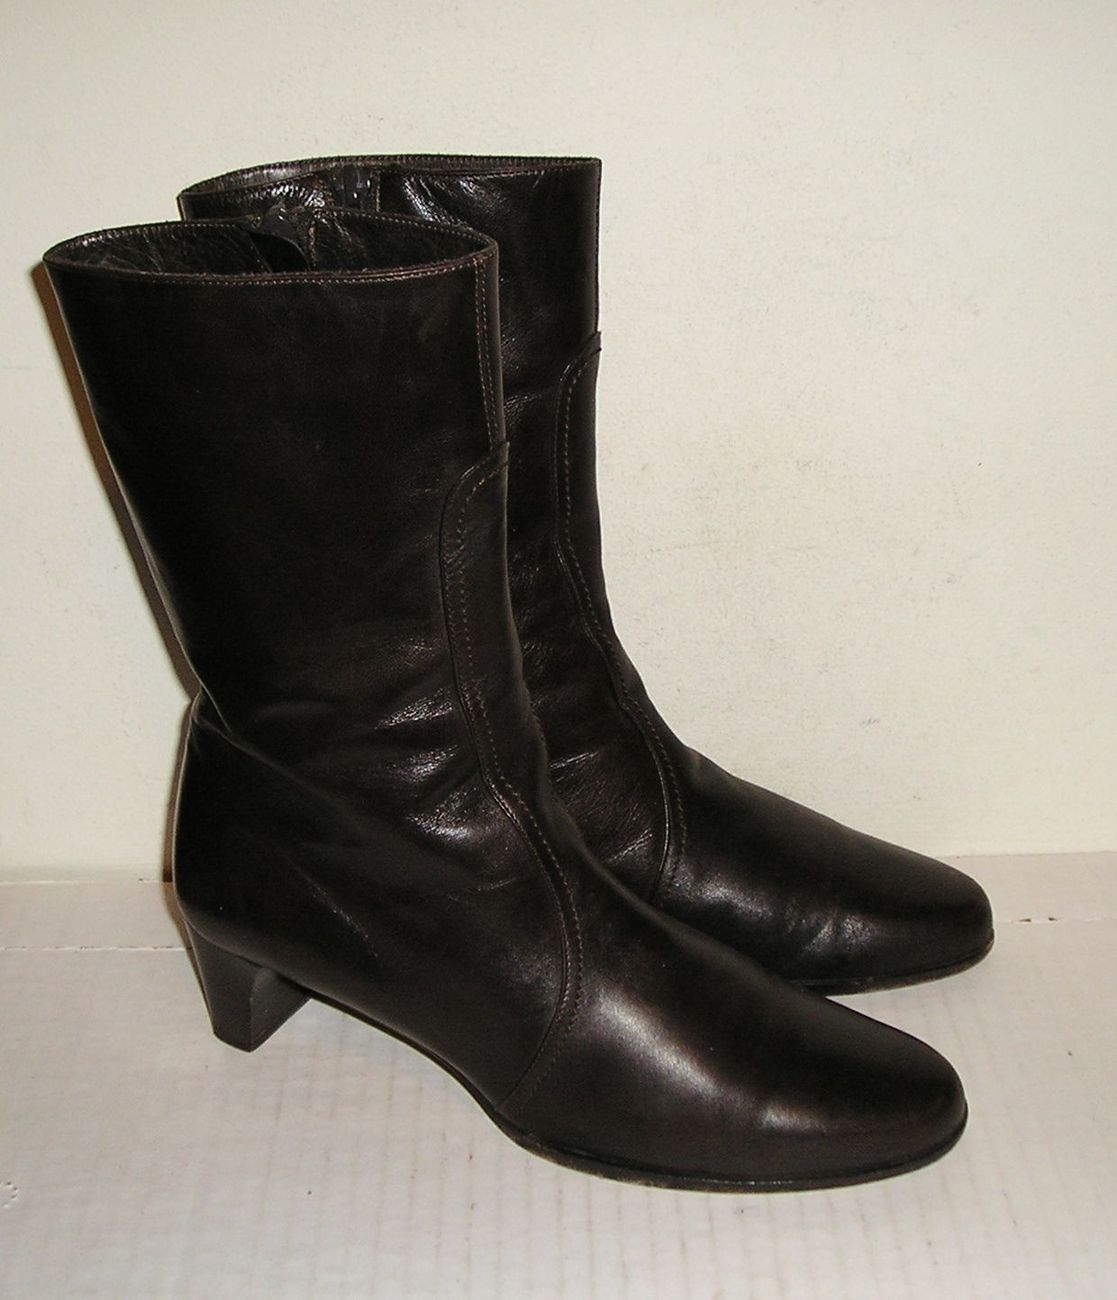 3a55ad68f44 Cole haan women s italian brown leather dress mid calf boots 6.5 b 1